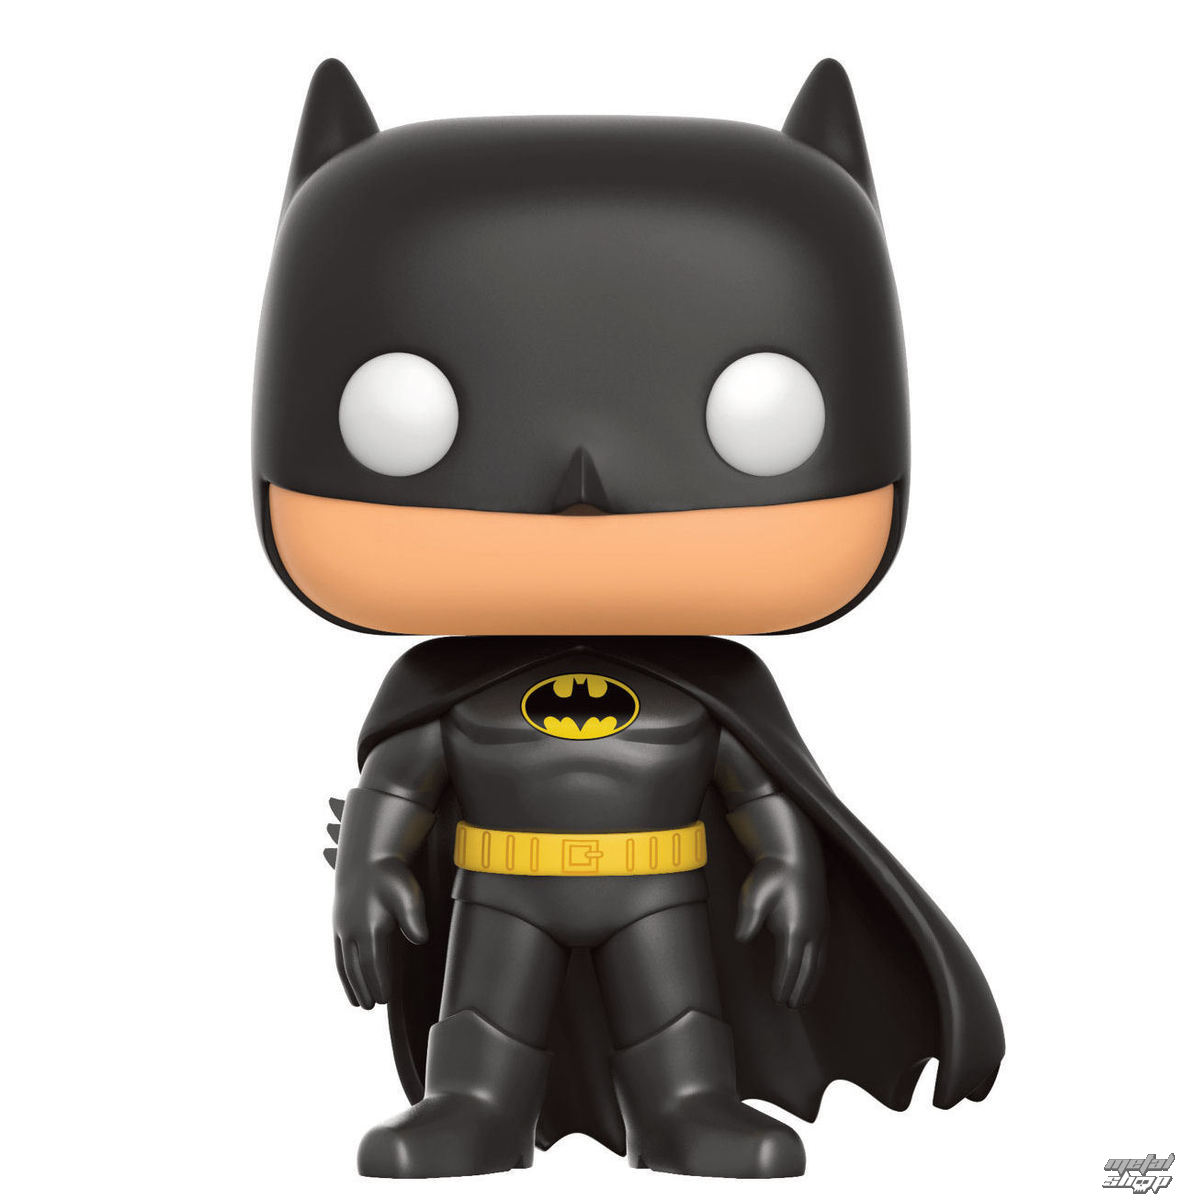 figurka Batman - DC Comics POP! - FK11496